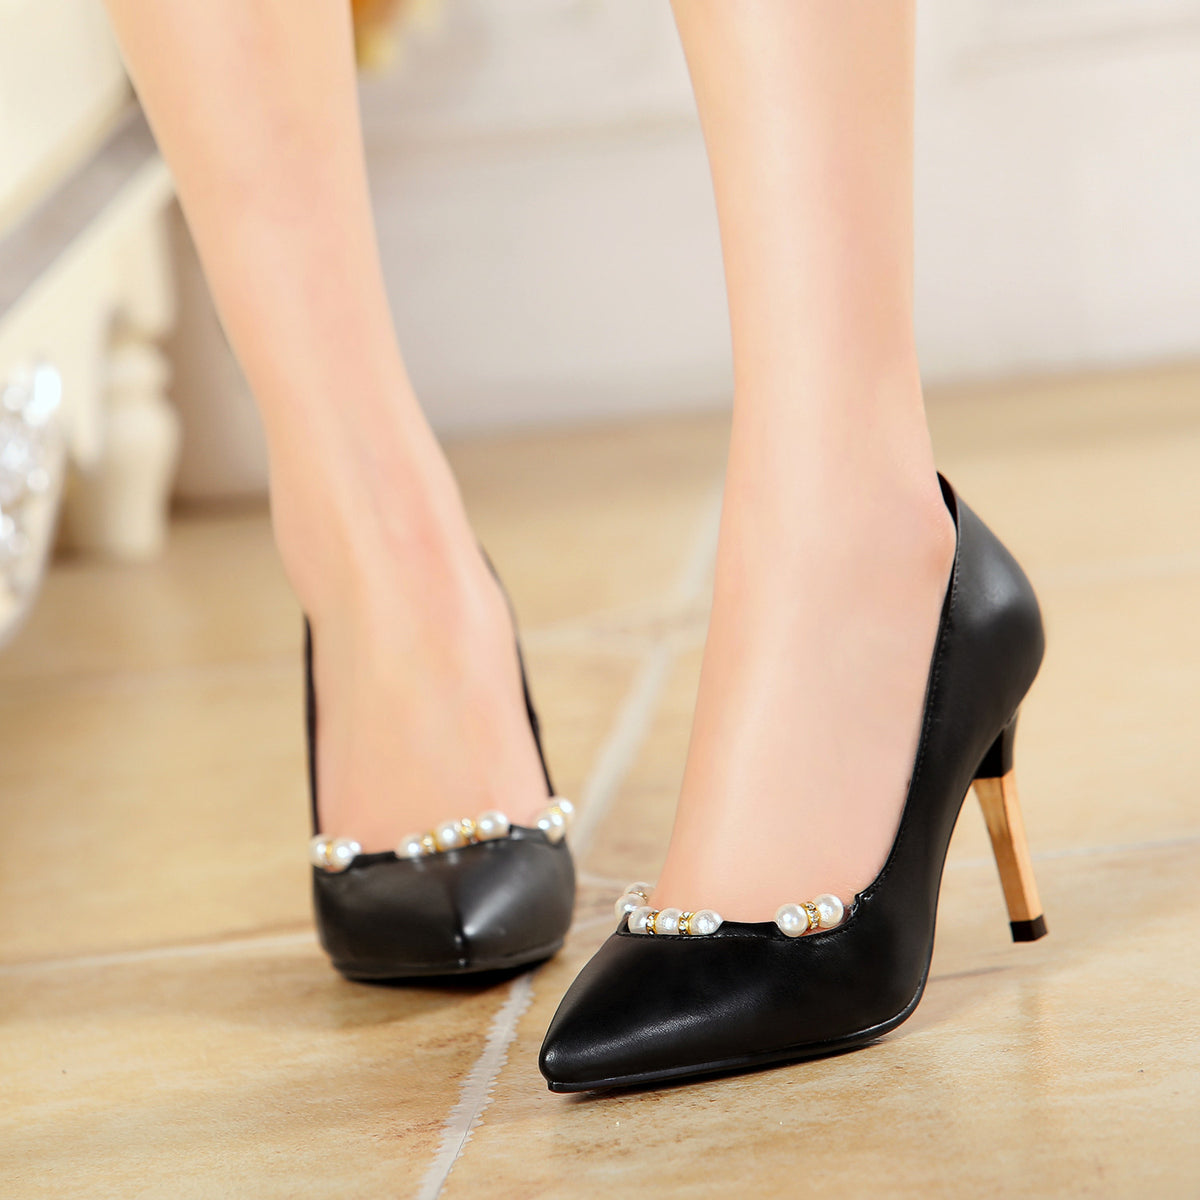 New Nice Fashion Sexy High Heels Shoes Woman Pumps Party